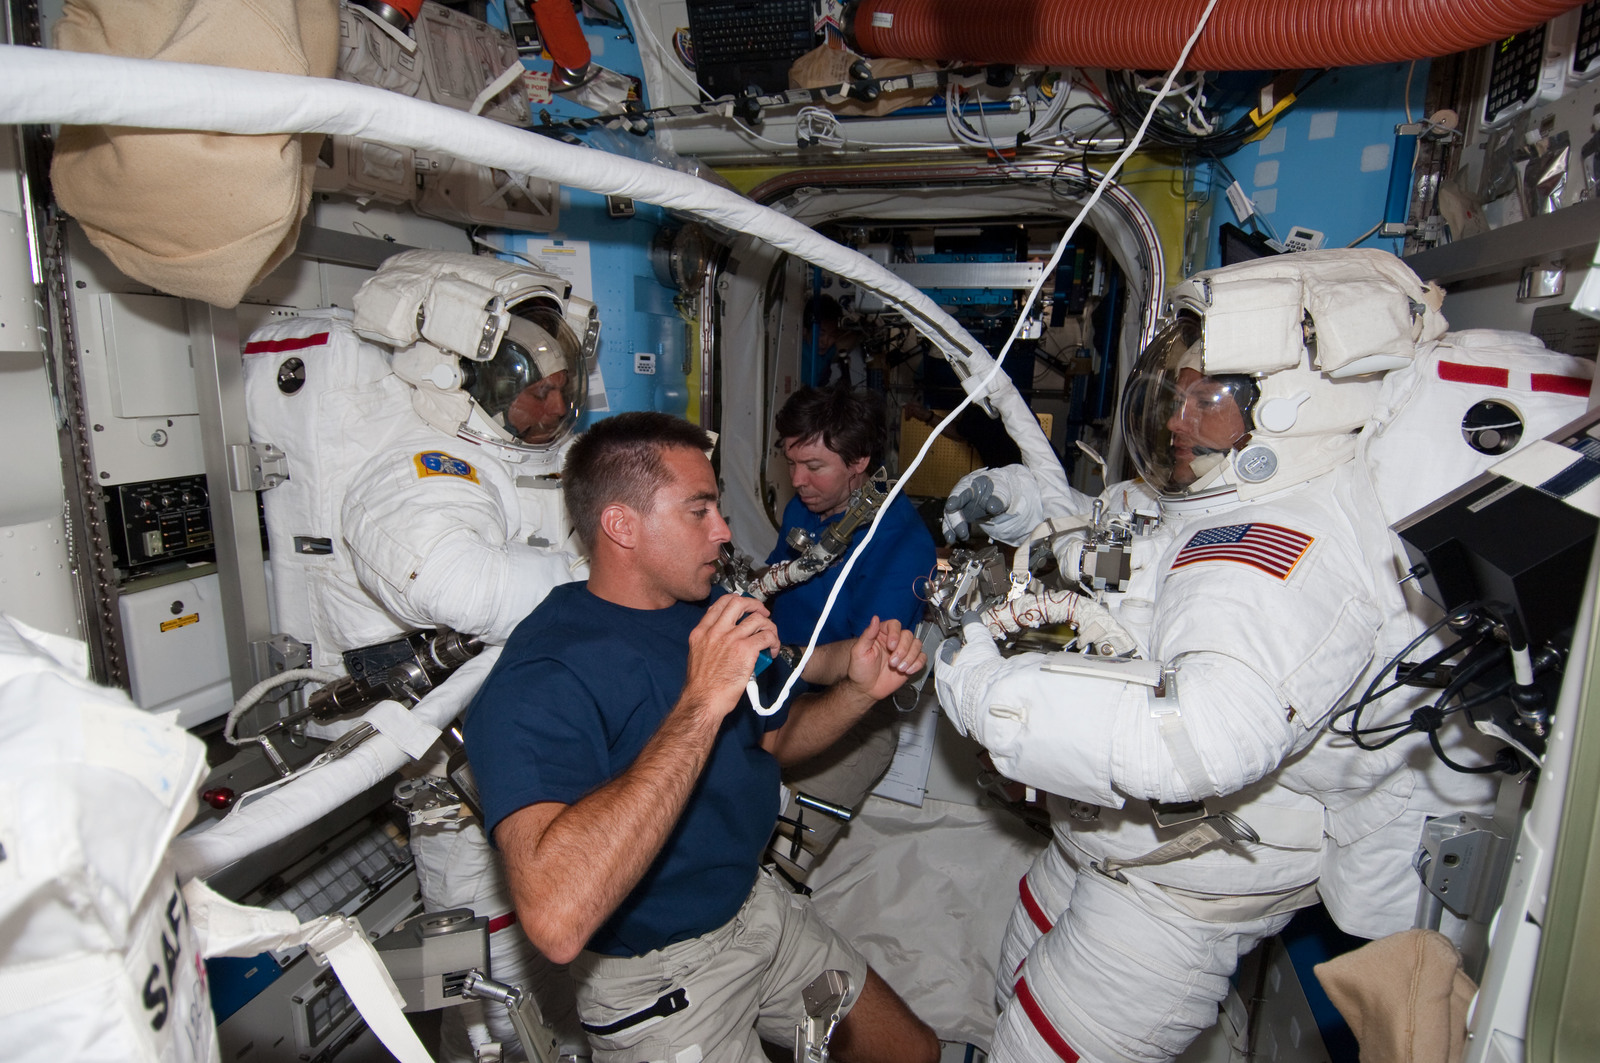 S127E007048 - STS-127 - Cassidy and Barratt assists Marshburn and Wolf with their EMUs during Joint Operations